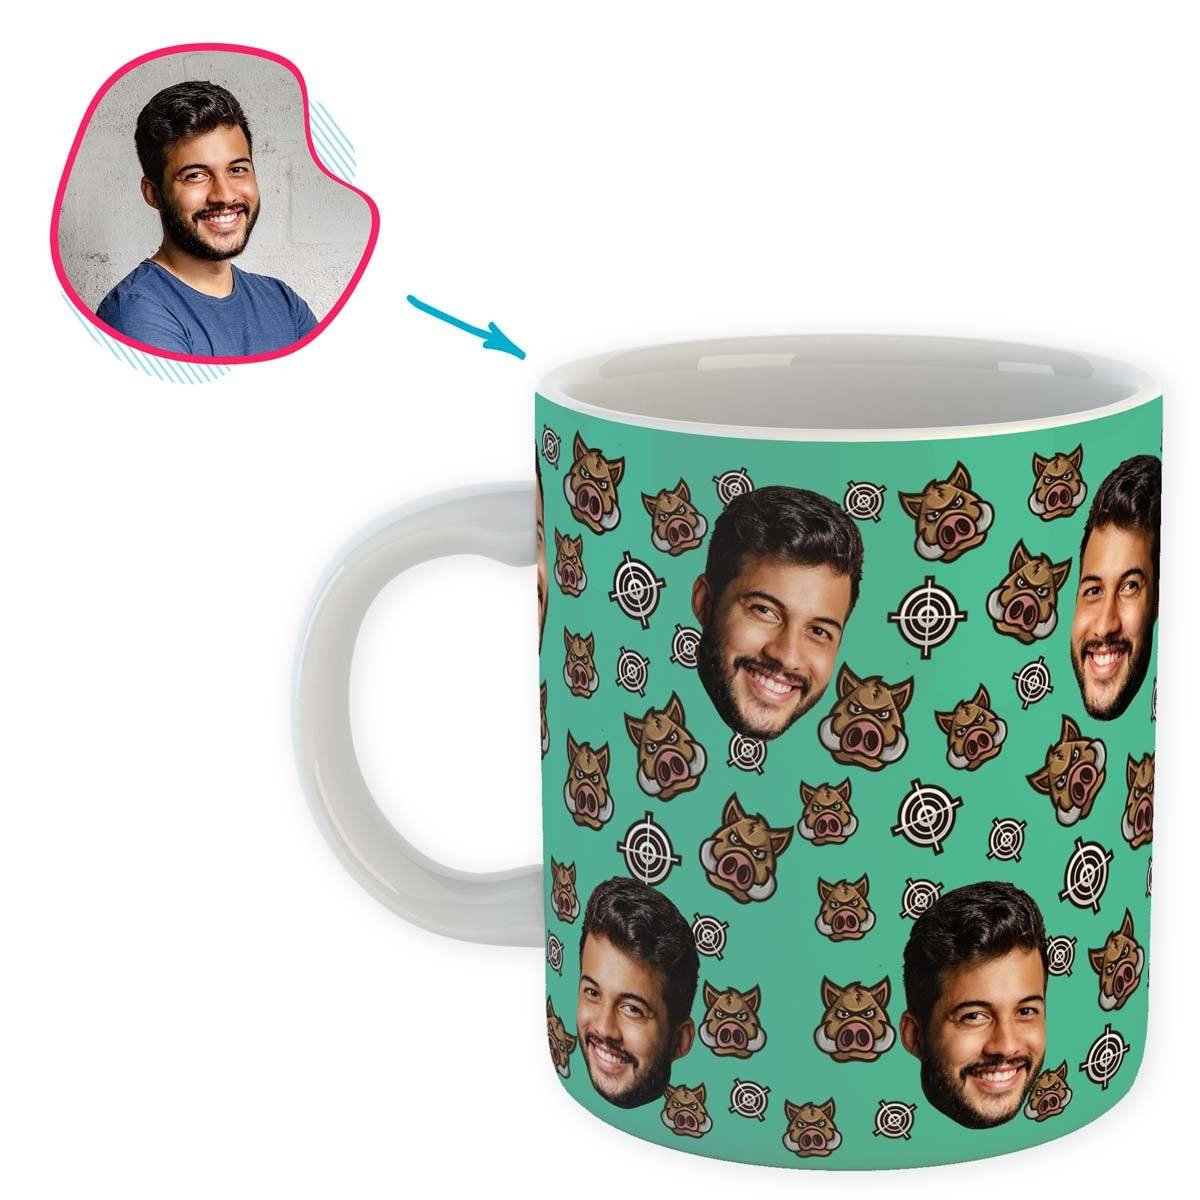 mint Boar Hunter mug personalized with photo of face printed on it